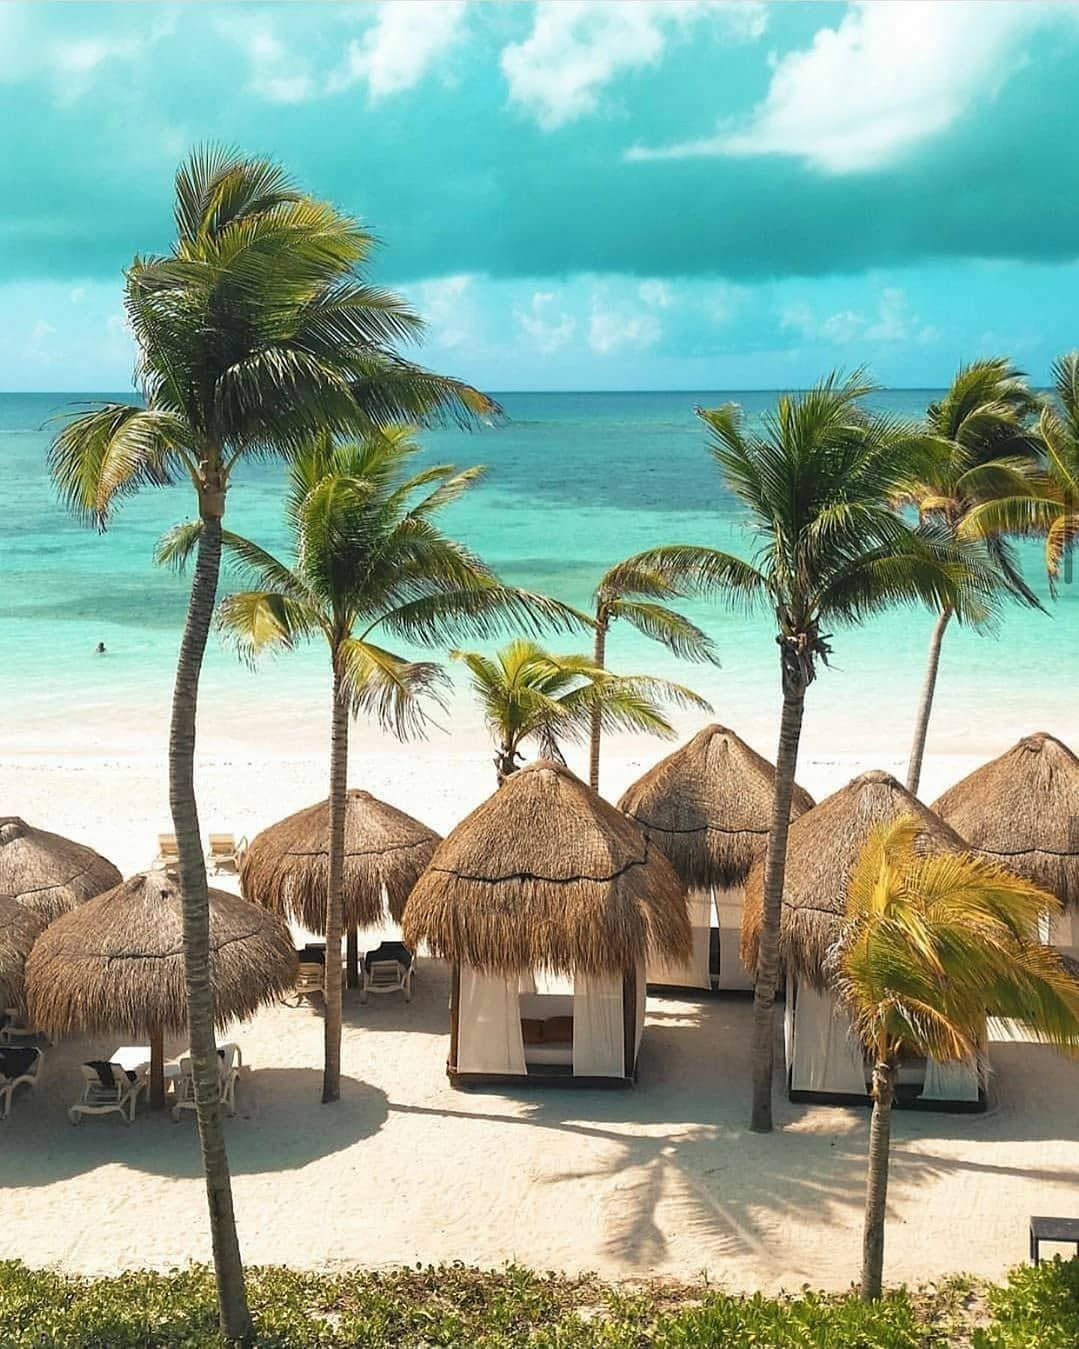 Impeccable Hotels On Instagram Lost In The Wind Riviera Maya Mexico Photo Ettwas Amazing Secrets Akumal Riviera Maya Riviera Maya Mexico Riviera Maya